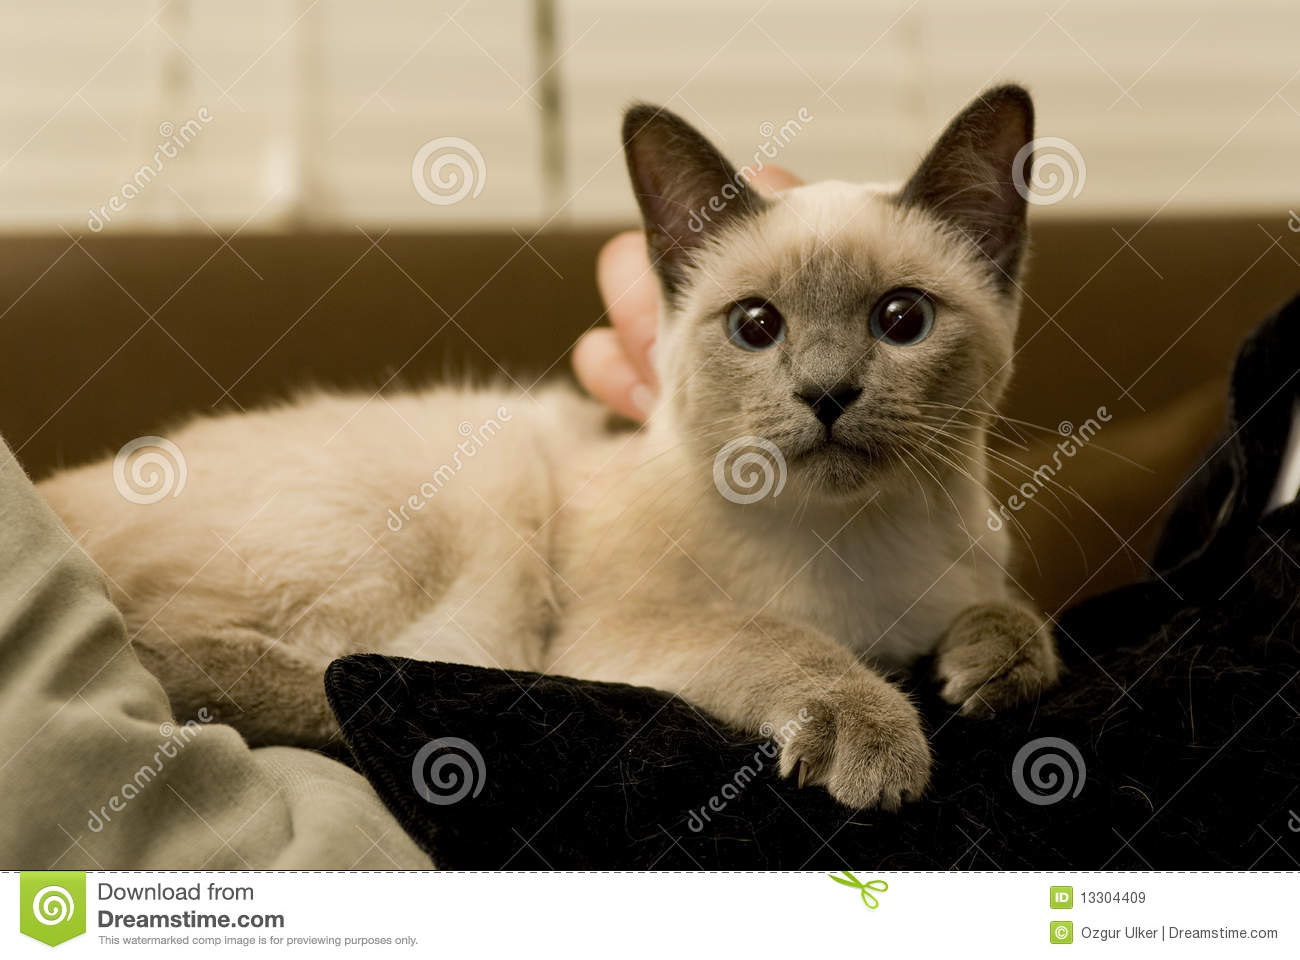 Lying On The Sofa Siamese Cat On Human Lap Royalty Free Stock Images - Image